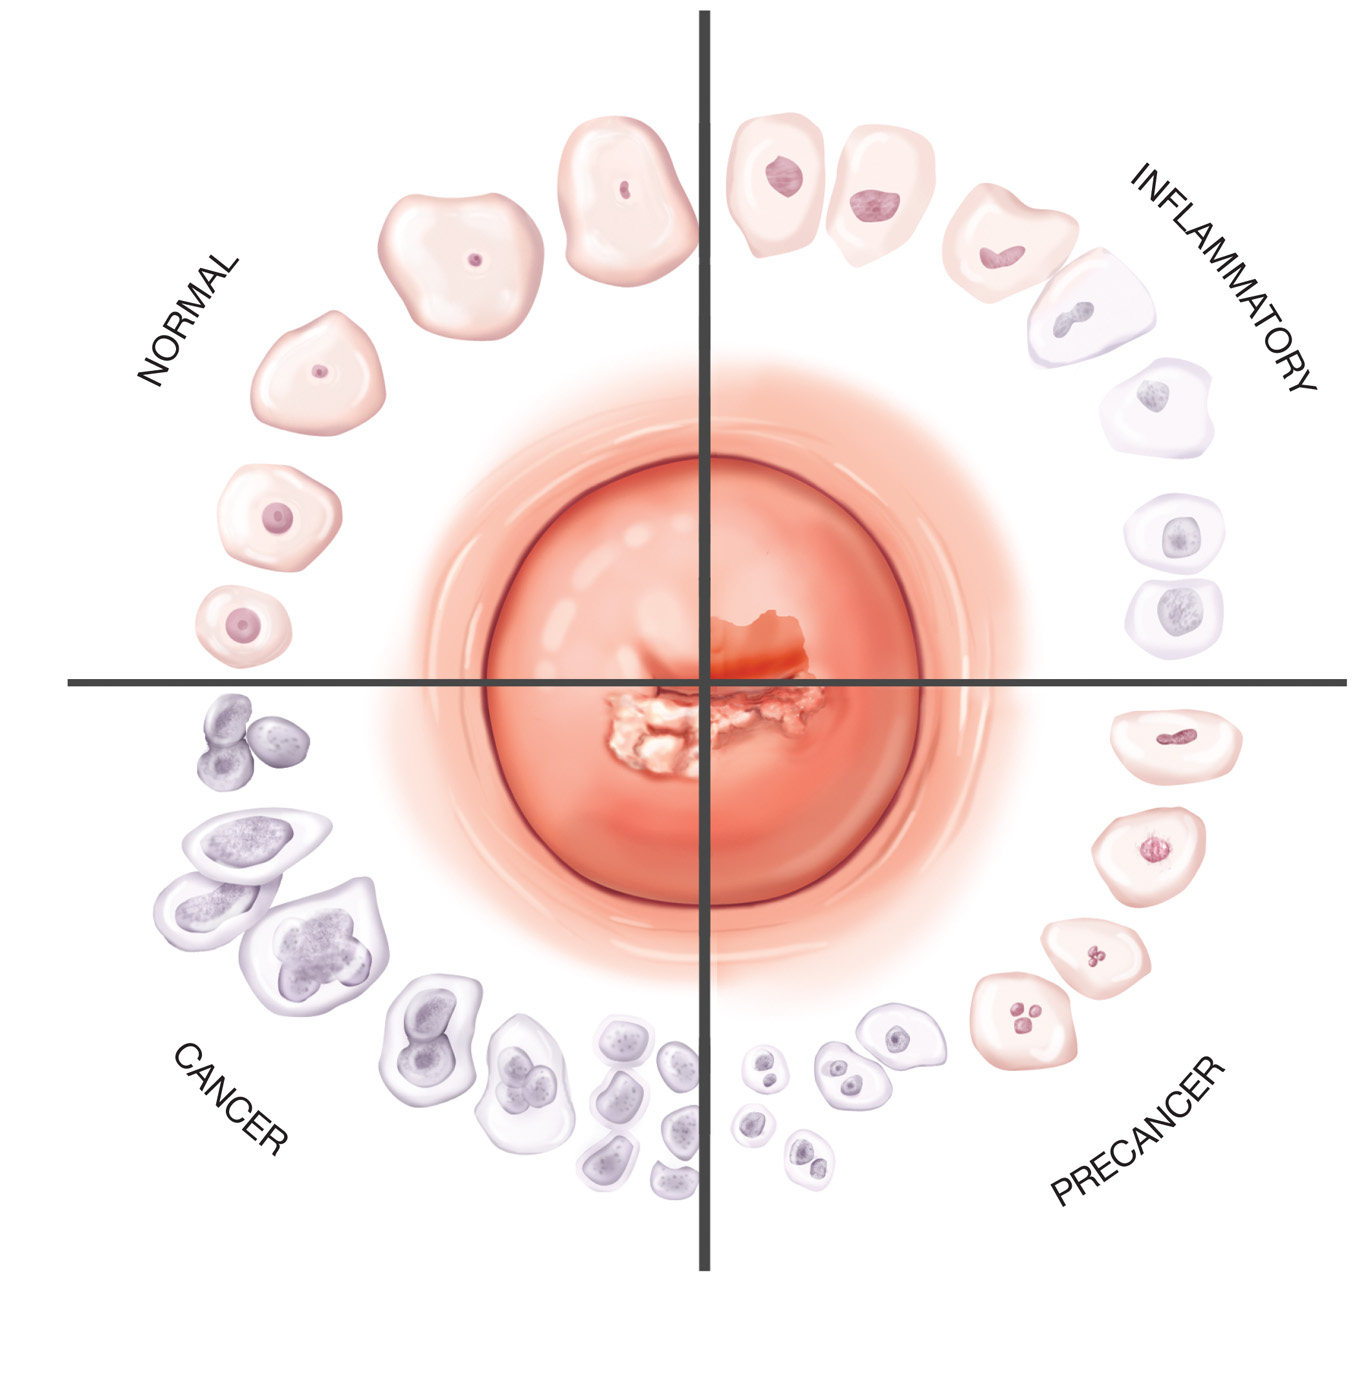 pap smear cells of the cervix shown in the center change in  : pap smear diagram - findchart.co